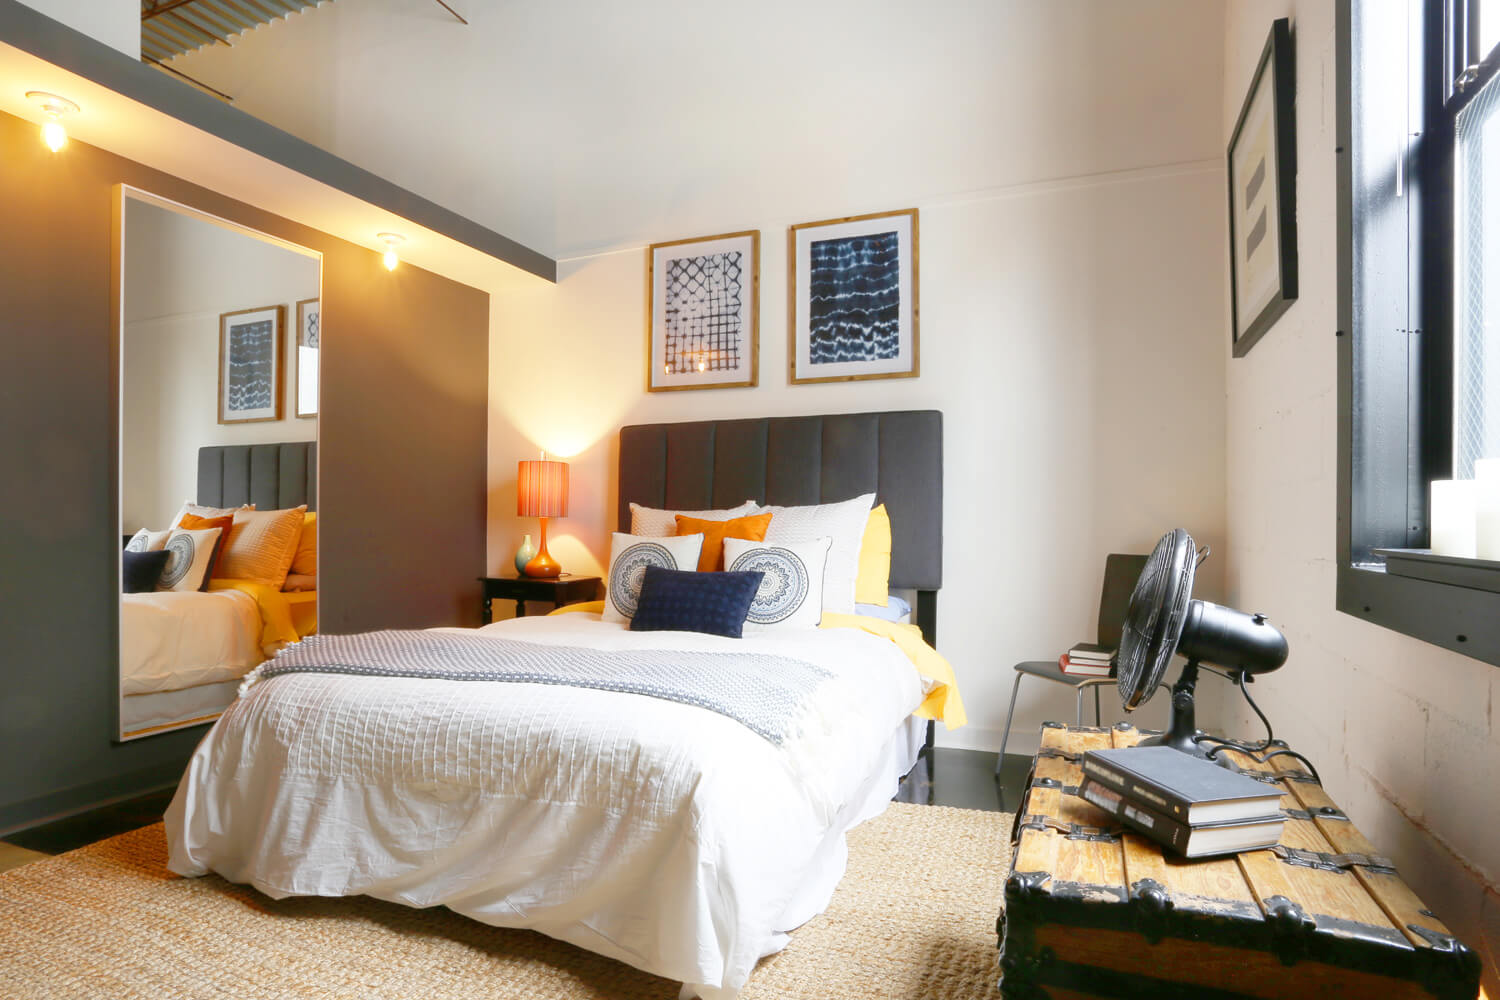 District 36 Lofts Designed by Foshee Architecture - Apartment Bedroom